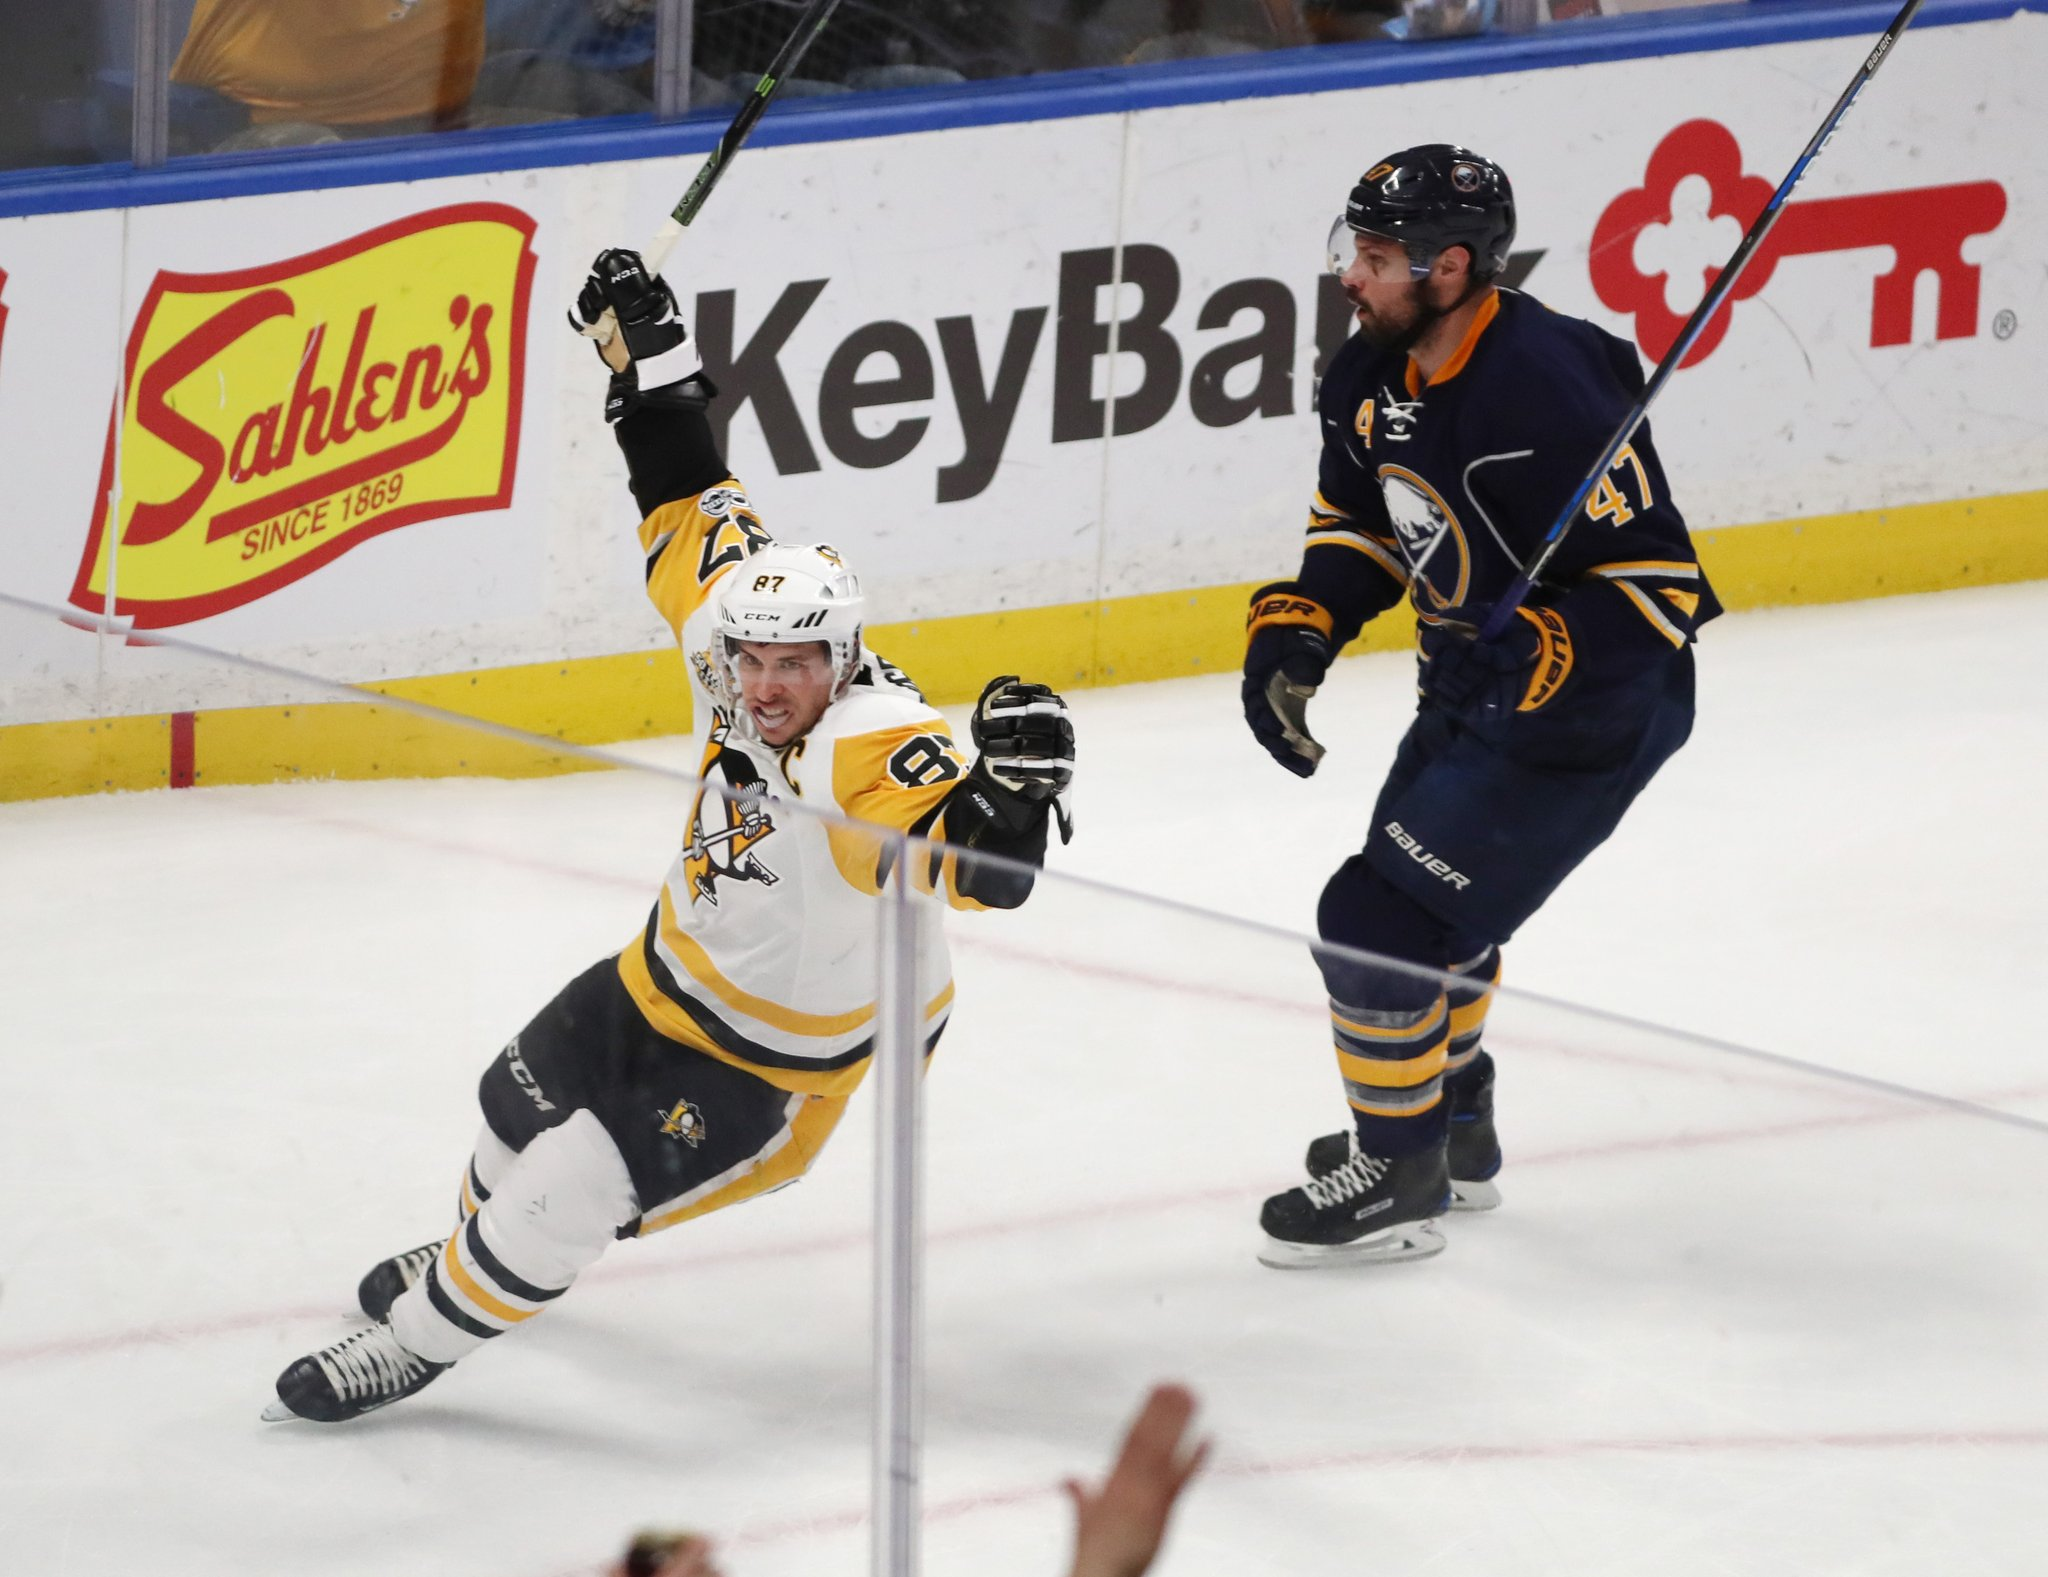 Sidney Crosby celebrates the opening goal after skating past Zach Bogosian and the Sabres. (James P. McCoy/Buffalo News)